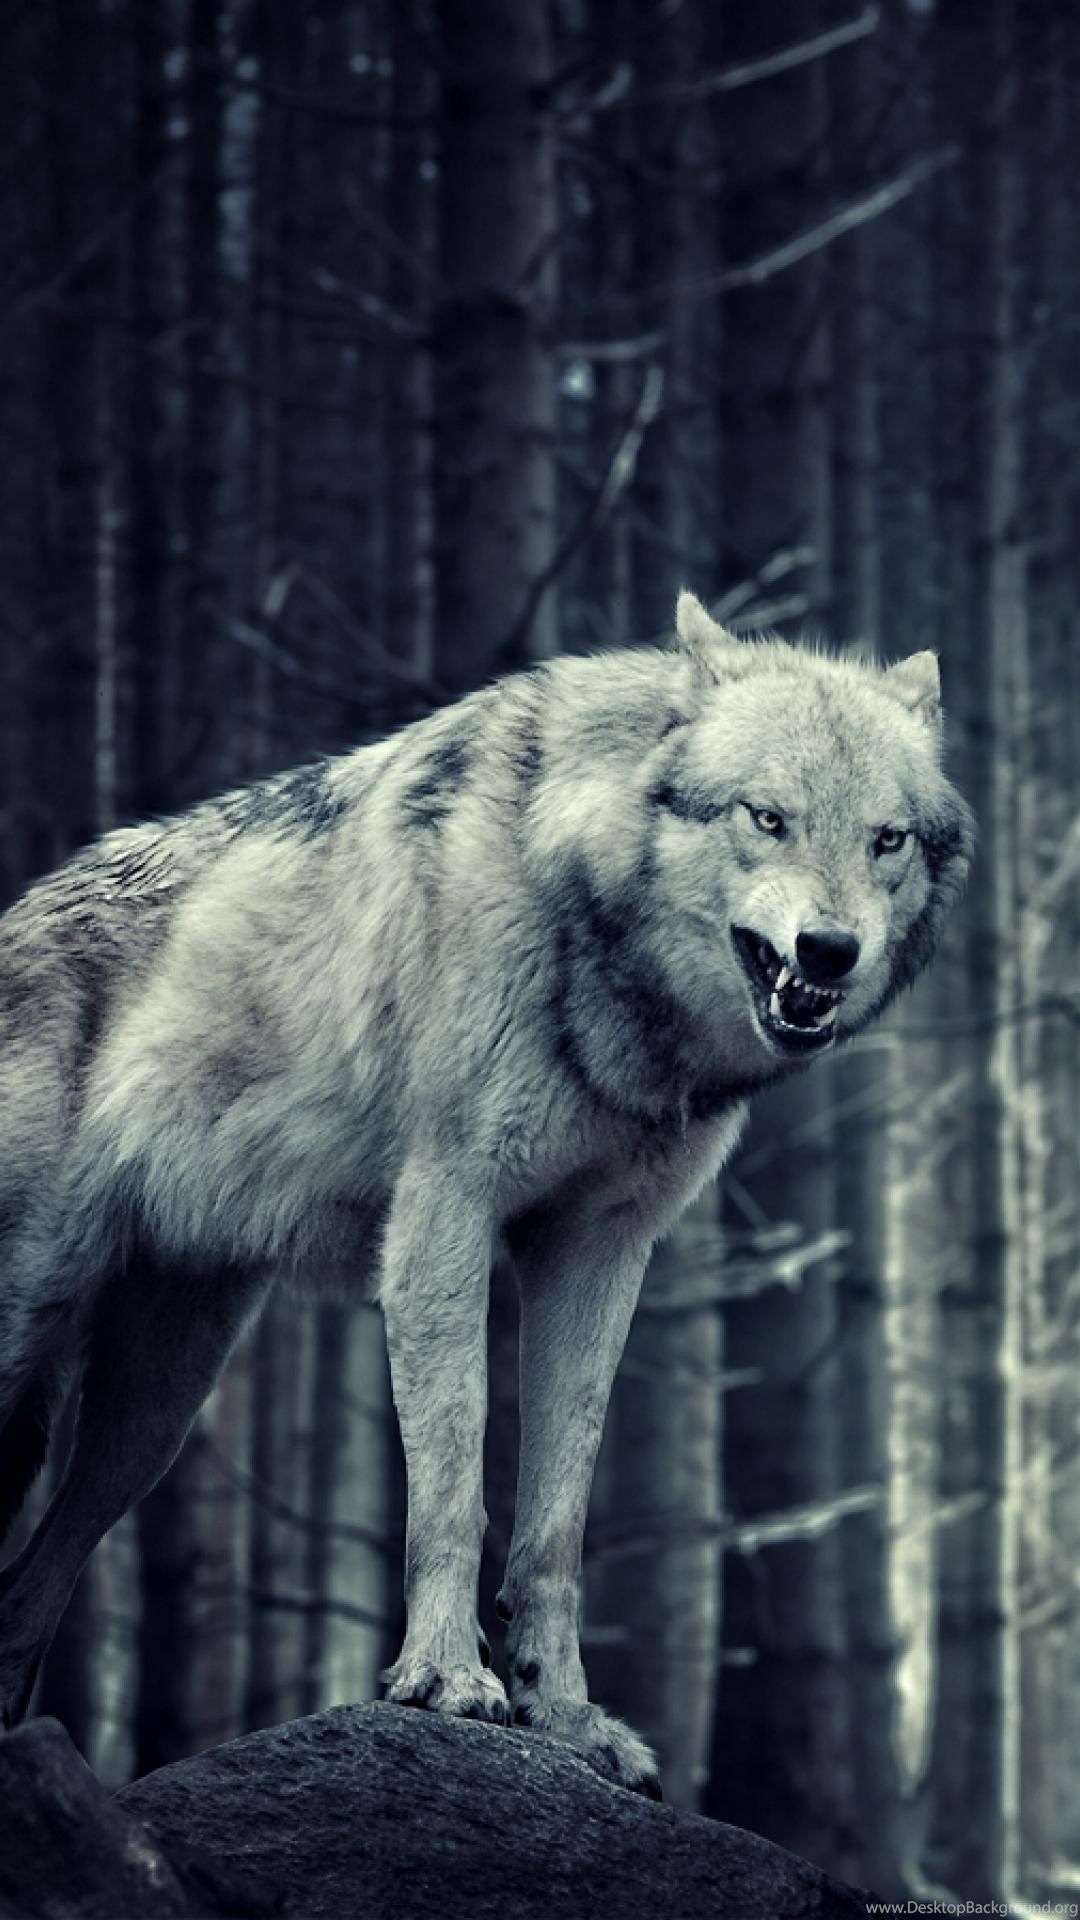 Pin by Aak123 Aak123 on Game of thrones Angry wolf, Wolf